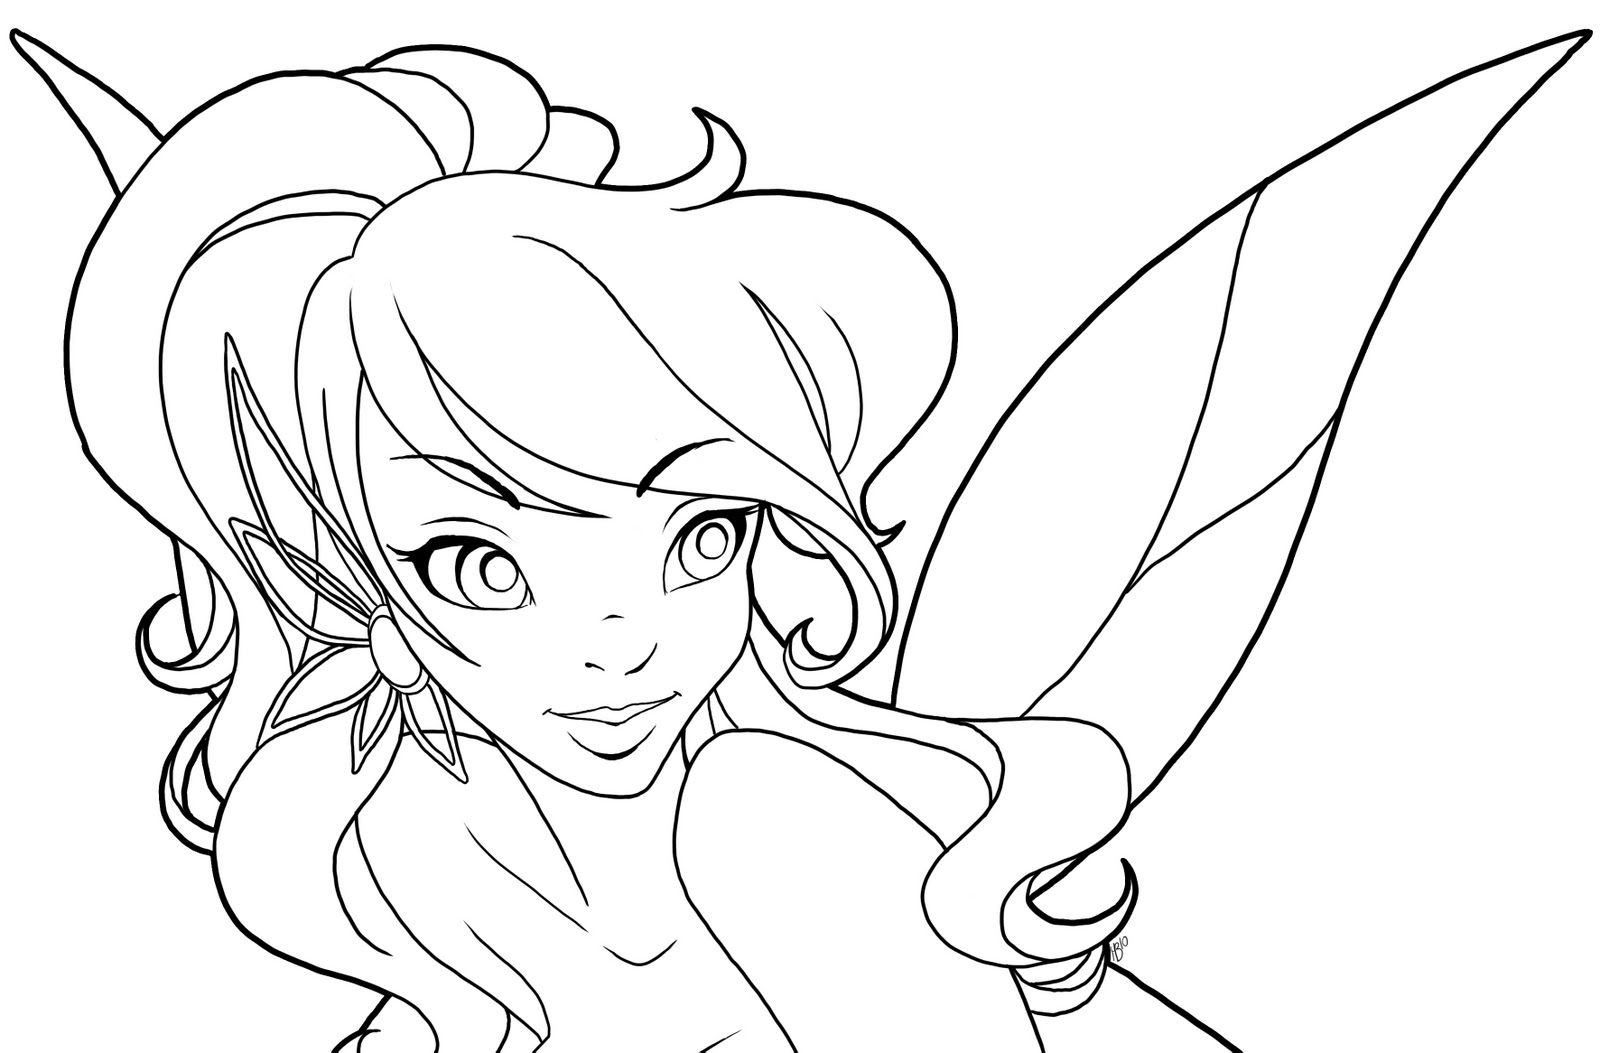 Cartoon Fairy Coloring Pages To Print | Coloring Pages